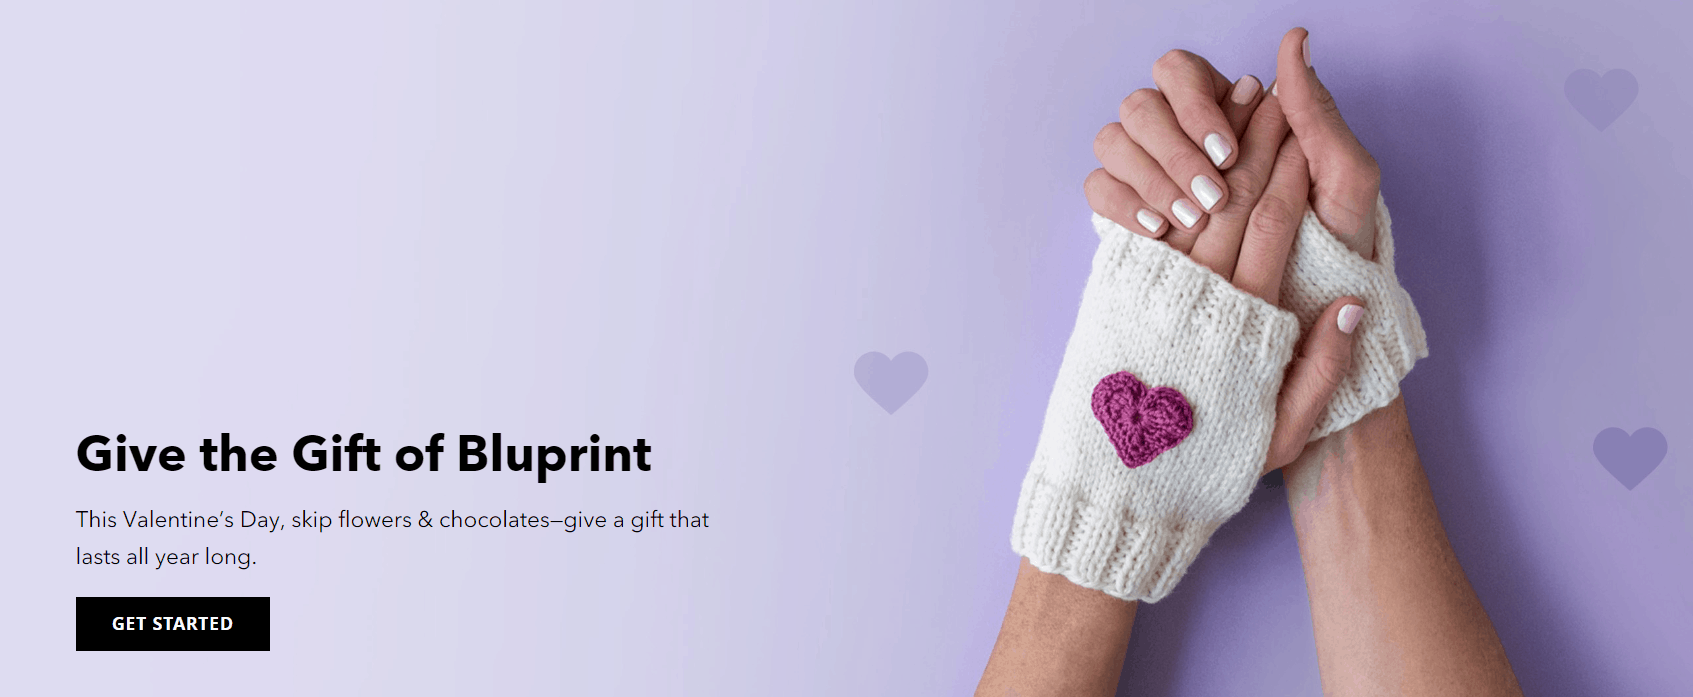 Bluprint Valentine's Day Deal: Gift Bluprint and Get Up To $16 Off!